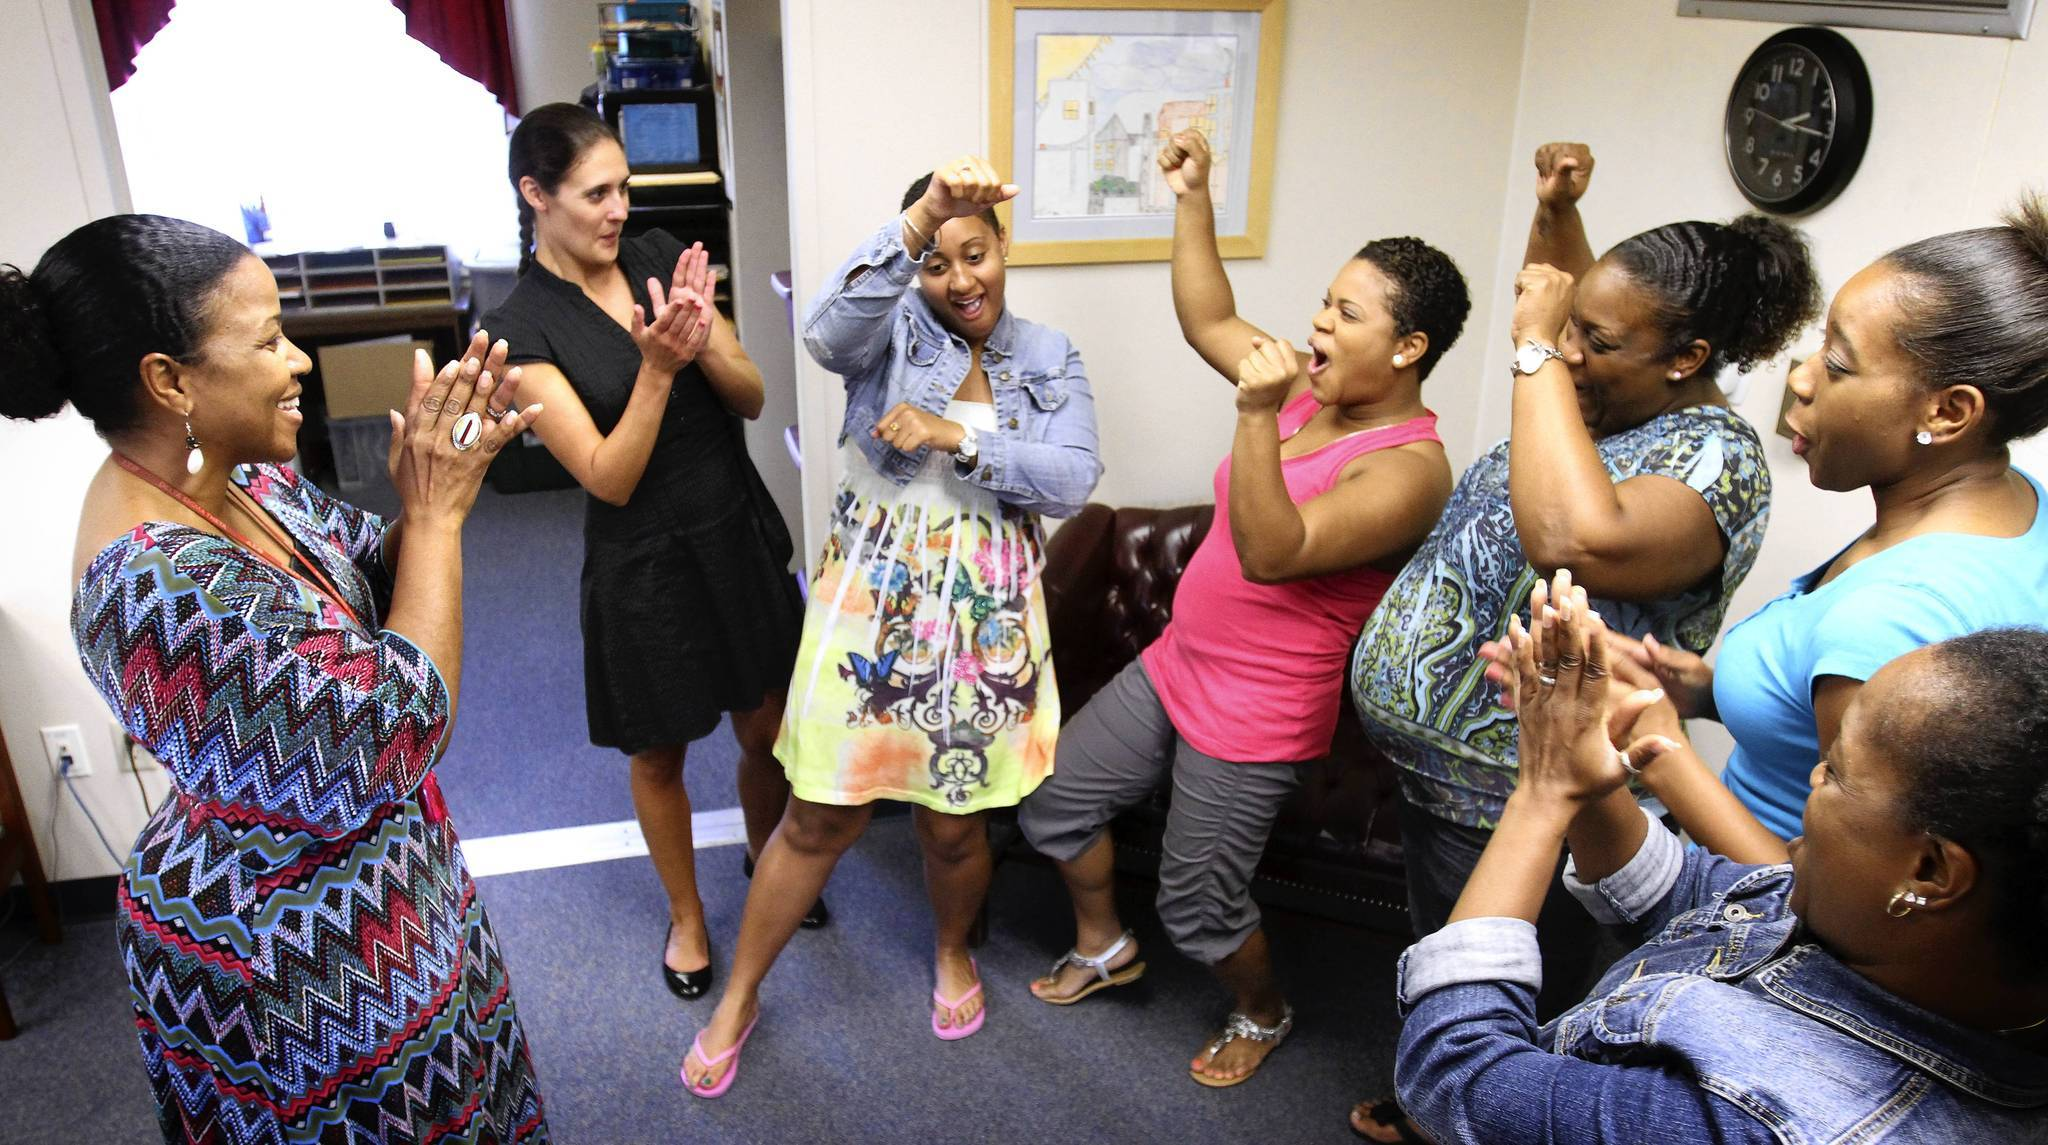 Principal Jennifer Porter-Smith (far left) celebrates with some teachers and staff Wednesday while talking about the school's dramatic turnaround. From left, Heather Maple; Kamilah McCallum; Stefanie Miller; Anna Kinchens; Kamari Smith; and Inez Mong.  (Joe Burbank, Orlando Sentinel)